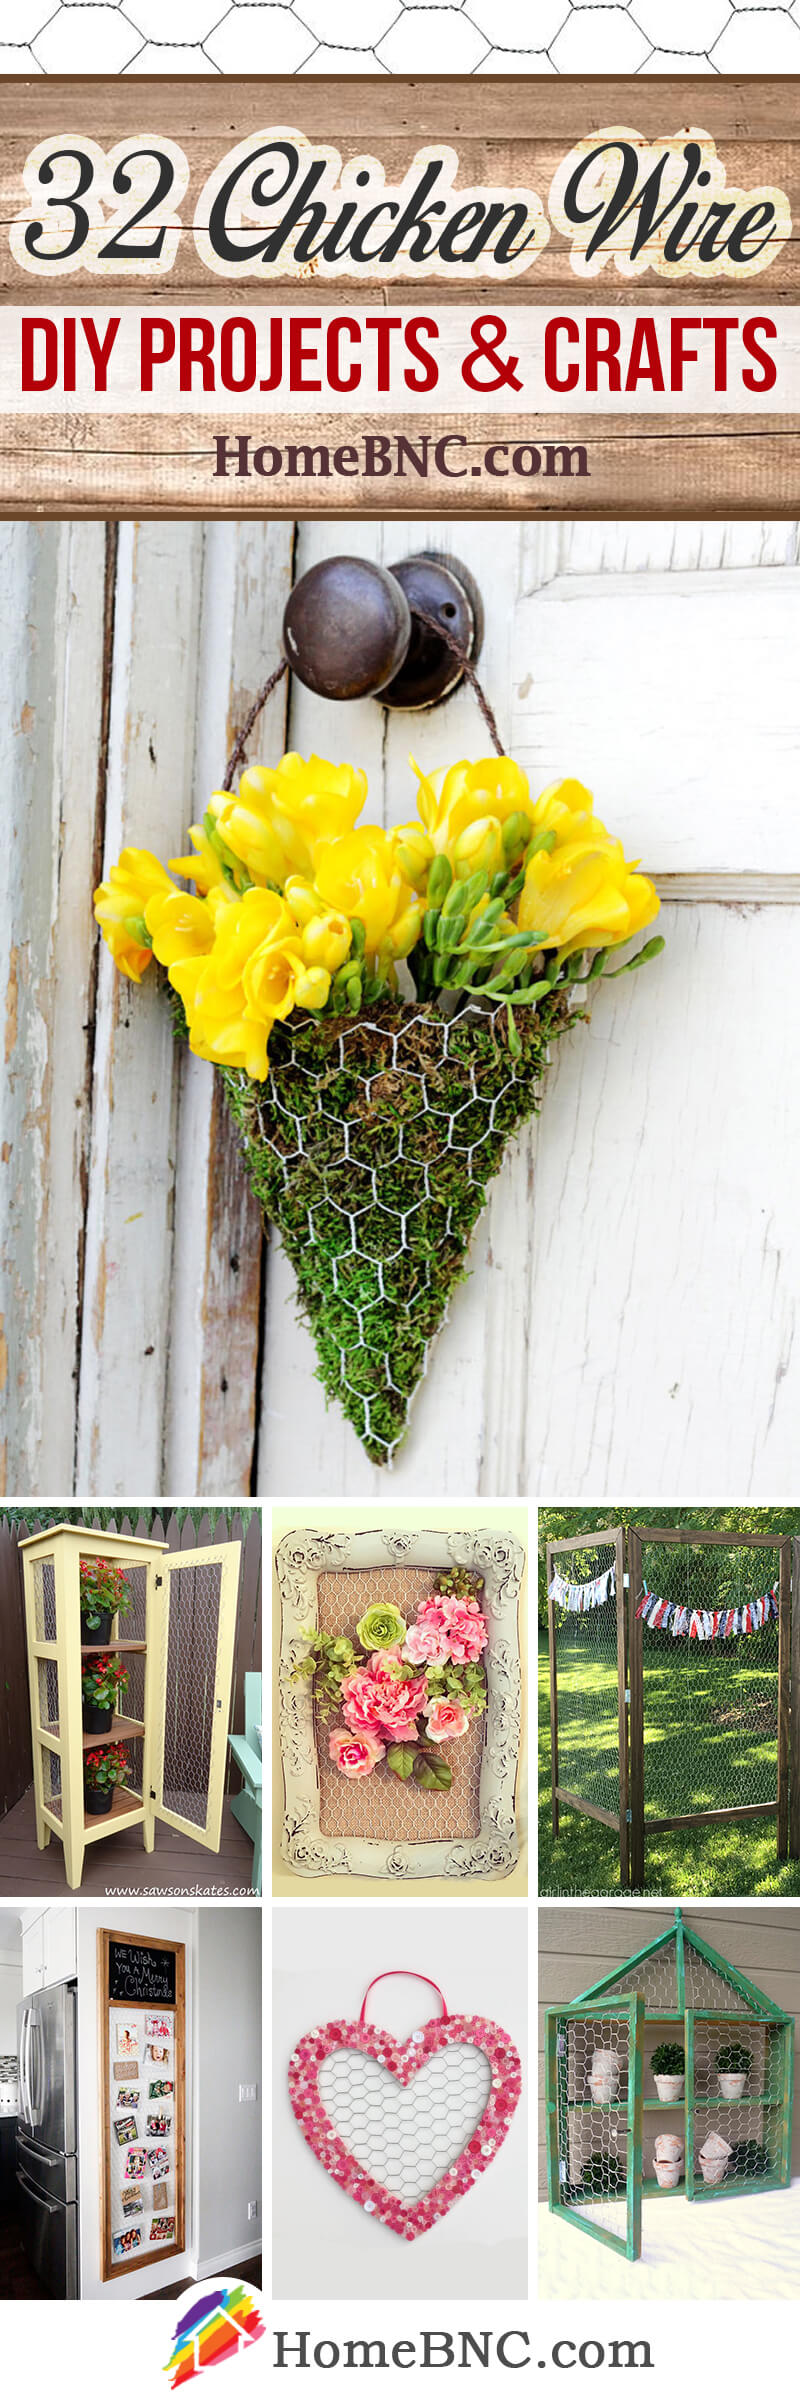 Chicken Wire DIY Projects